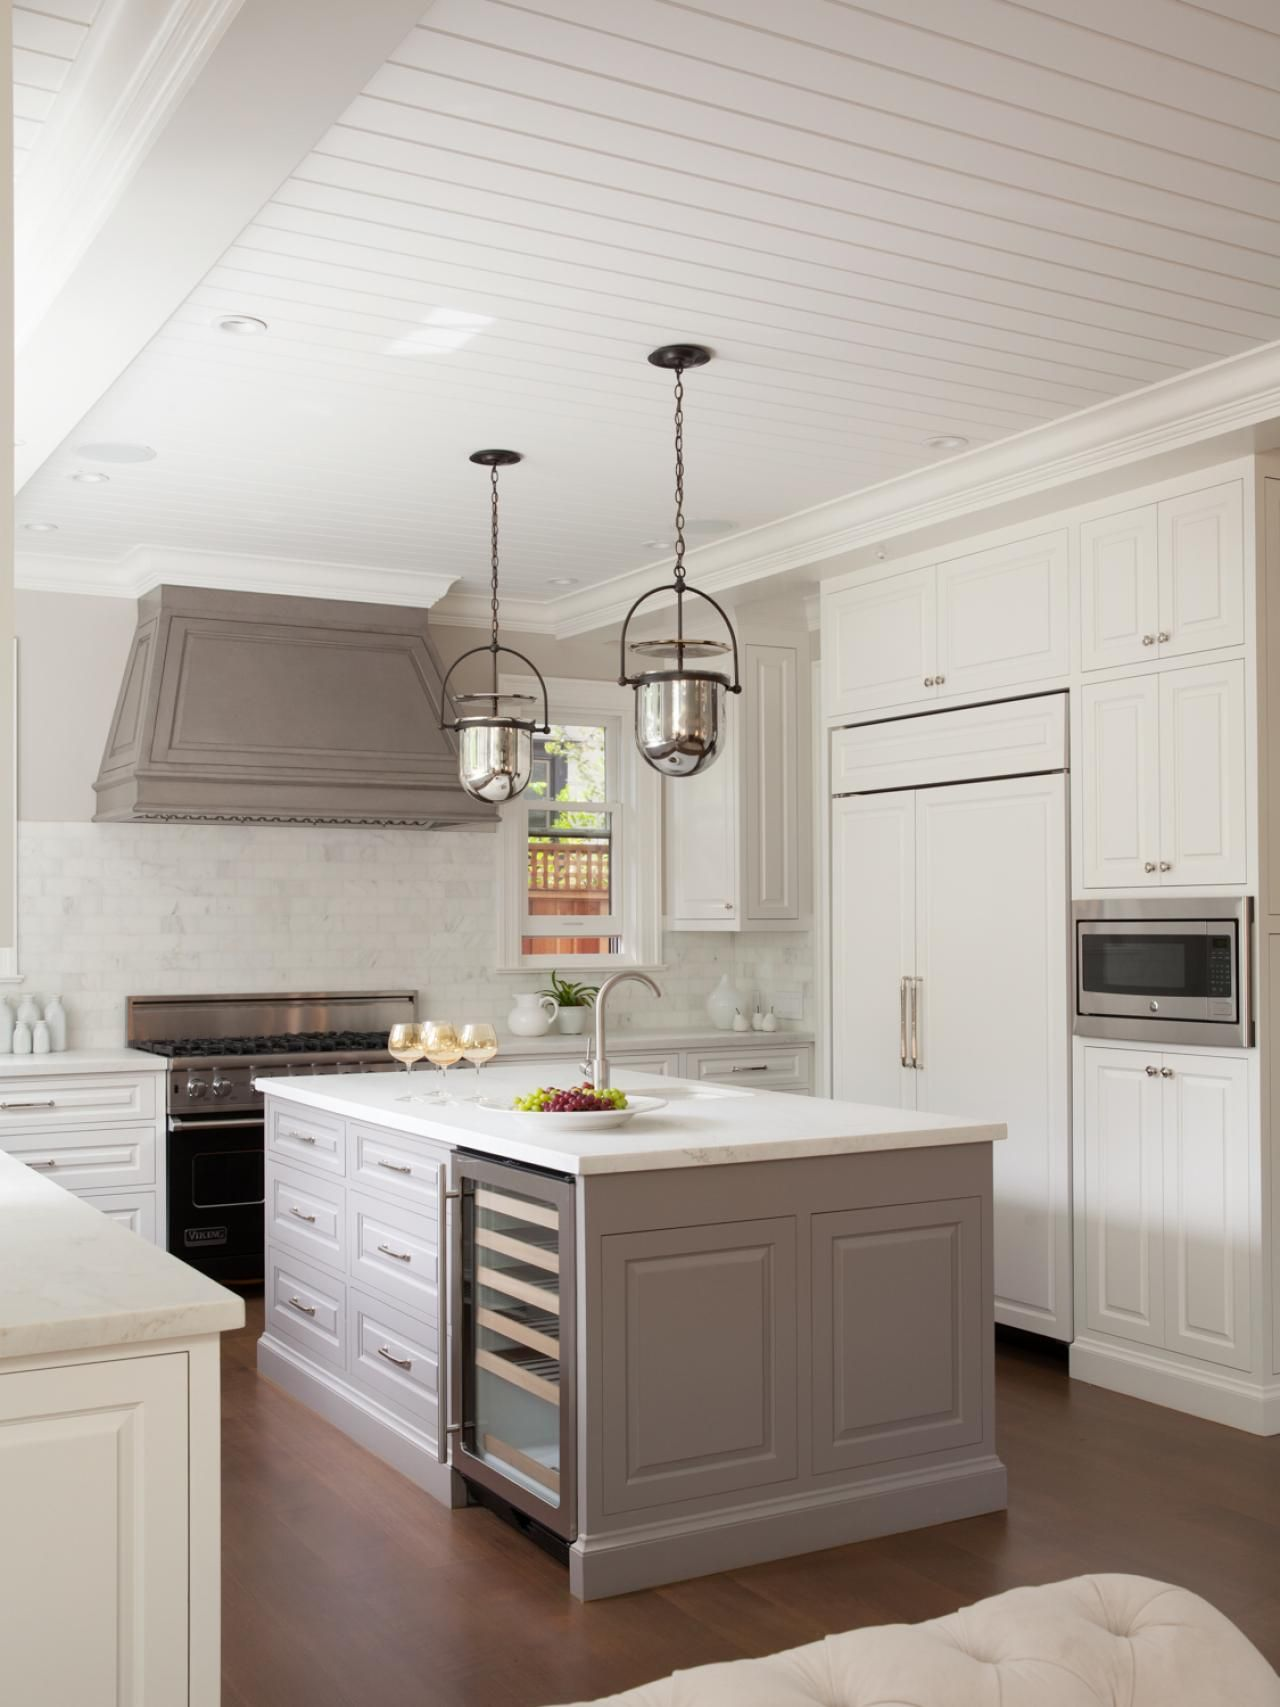 like carrara on kitchen marble classy countertop countersa look faux about painting afterc of to agreeable countertops